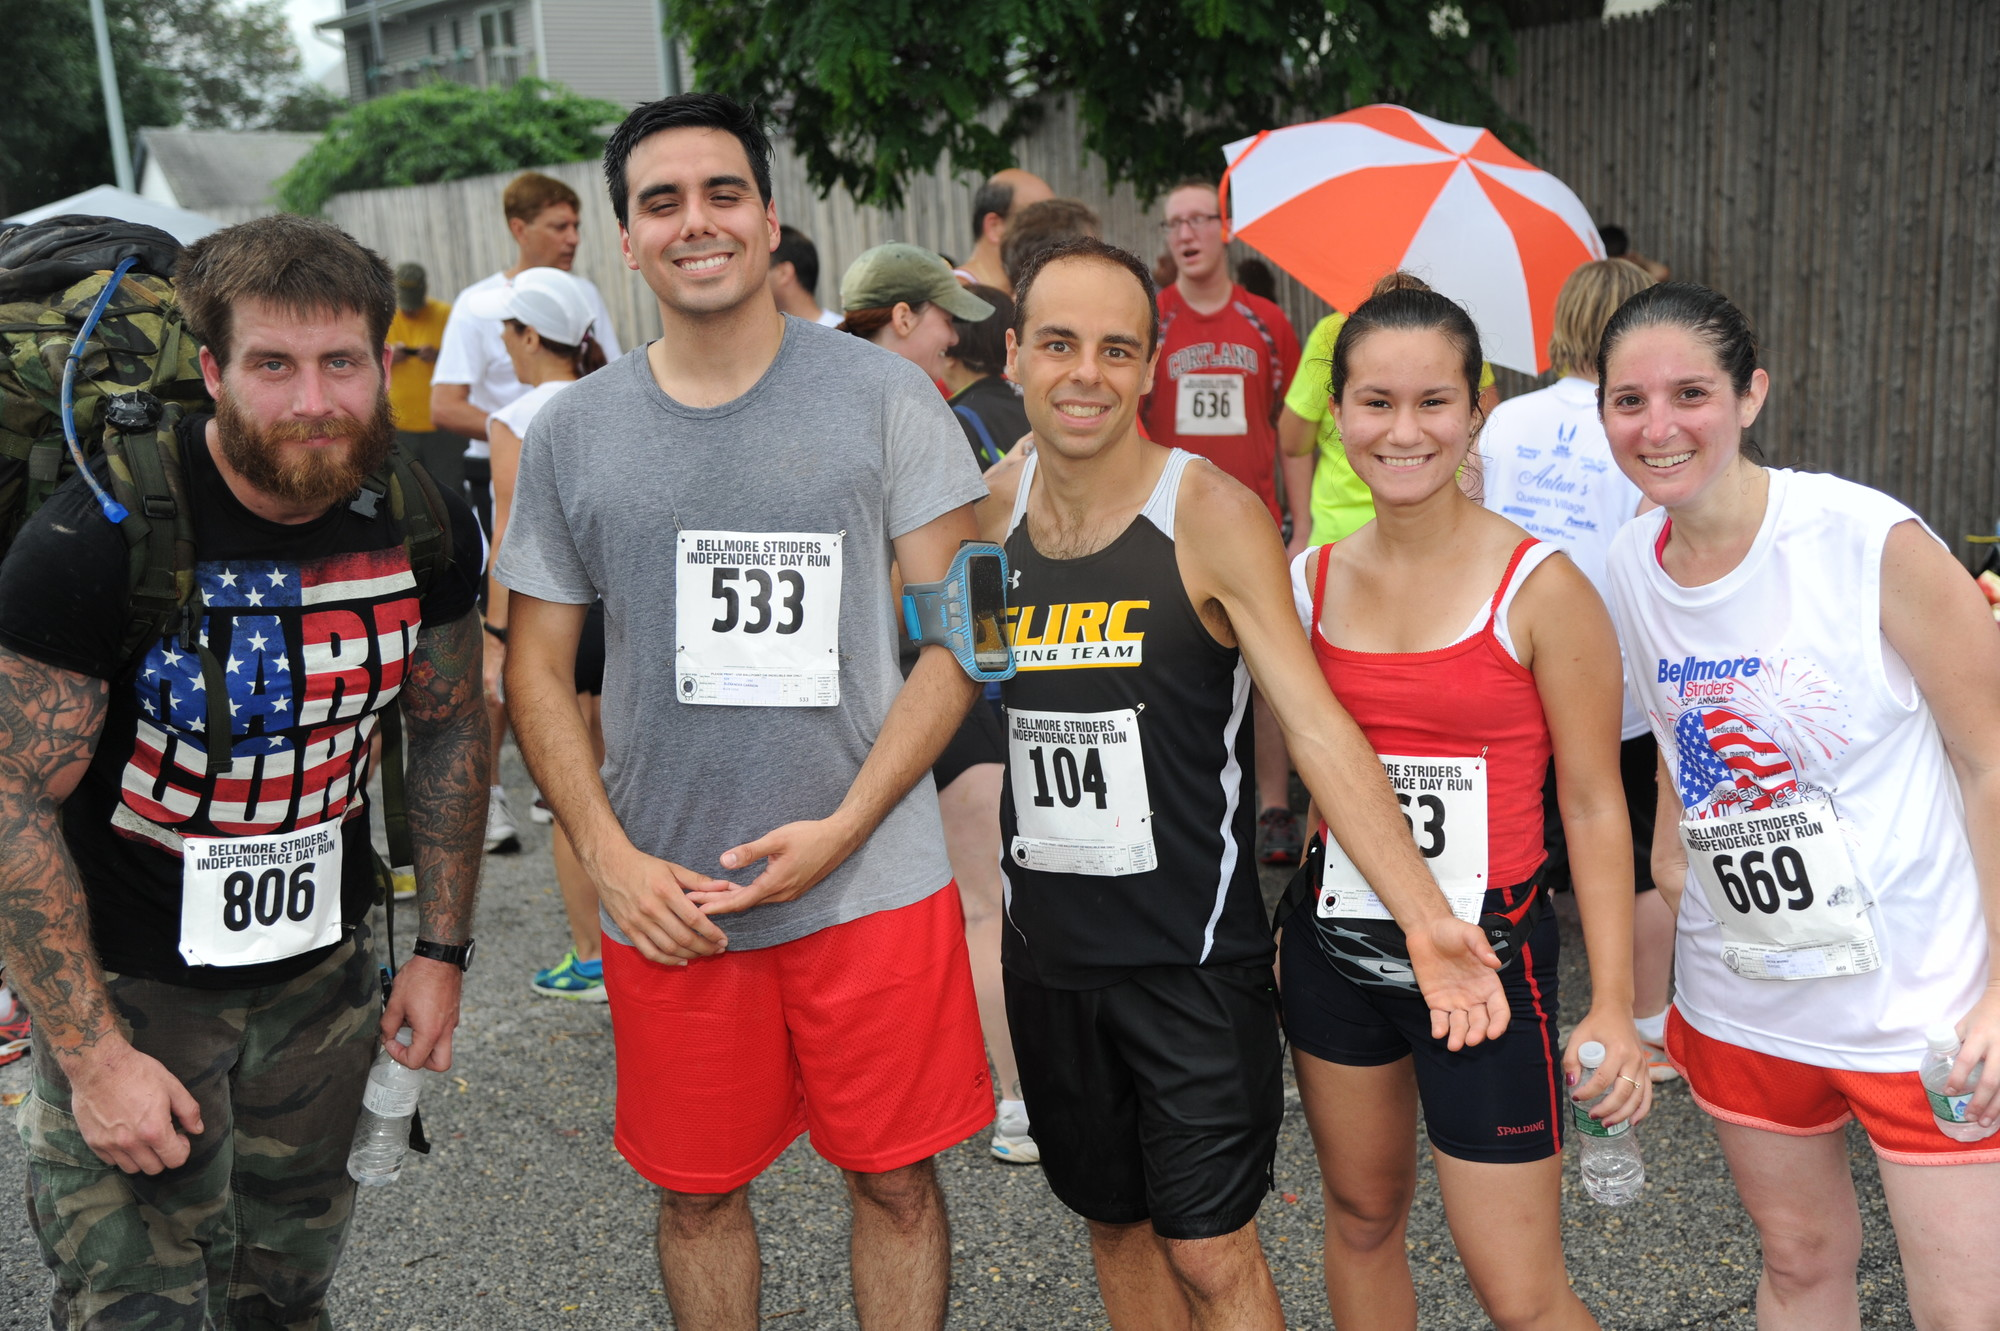 Billy Richards, a former Marine, Alex Carrion, David Drebsky, Alexa Morales and Jackie Irving were all smiles after the race.